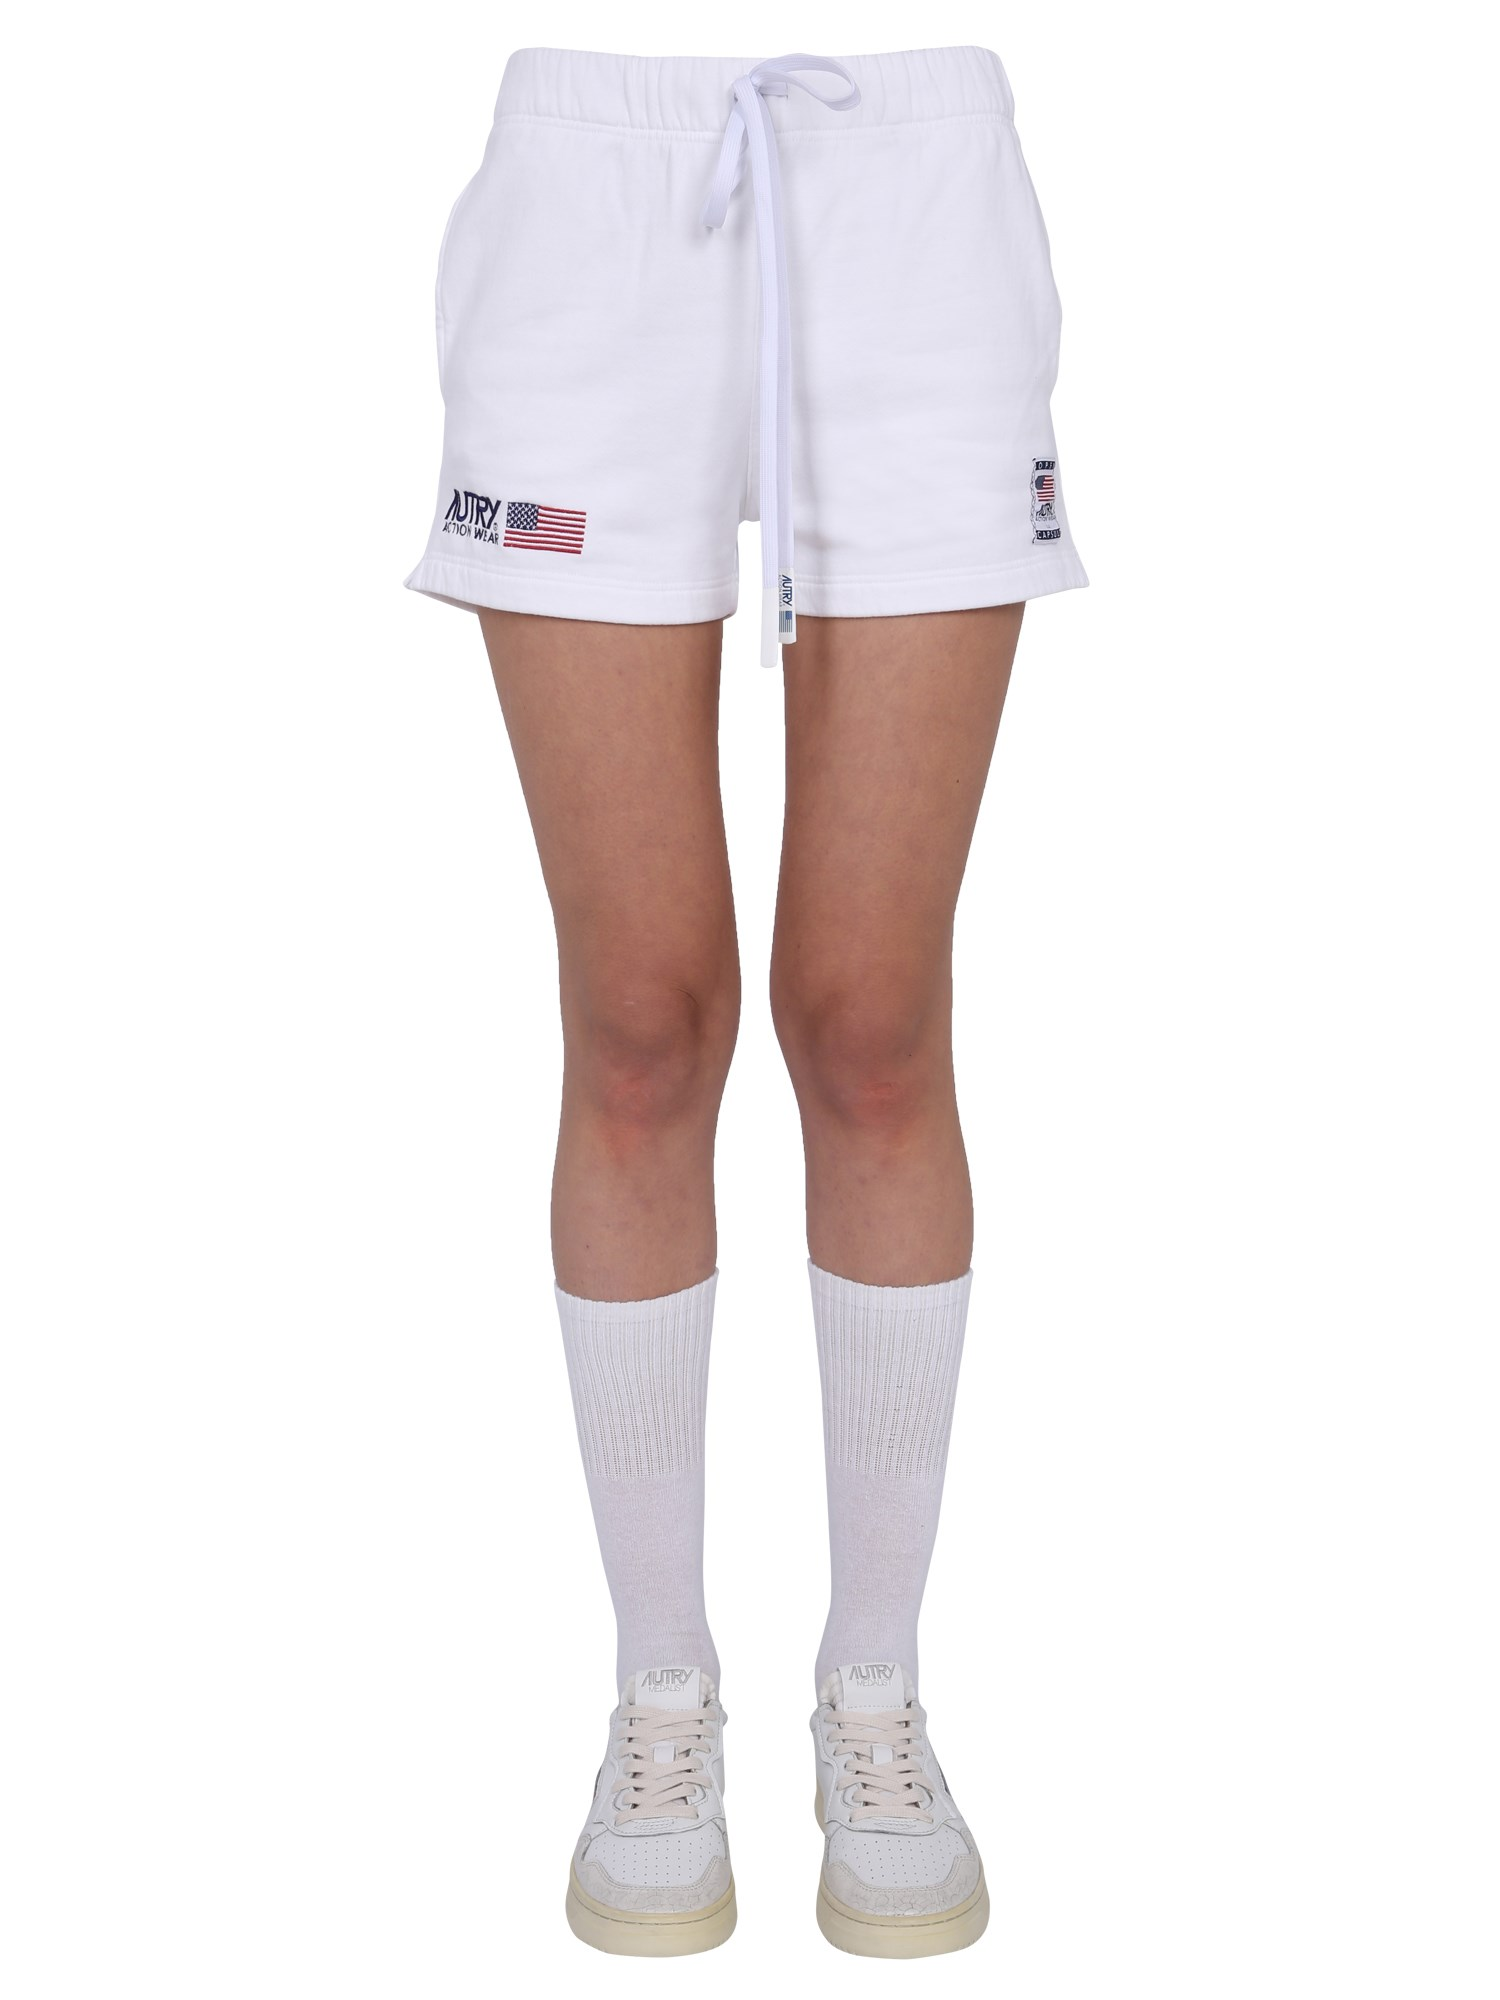 Autry Clothing SHORTS WITH LOGO